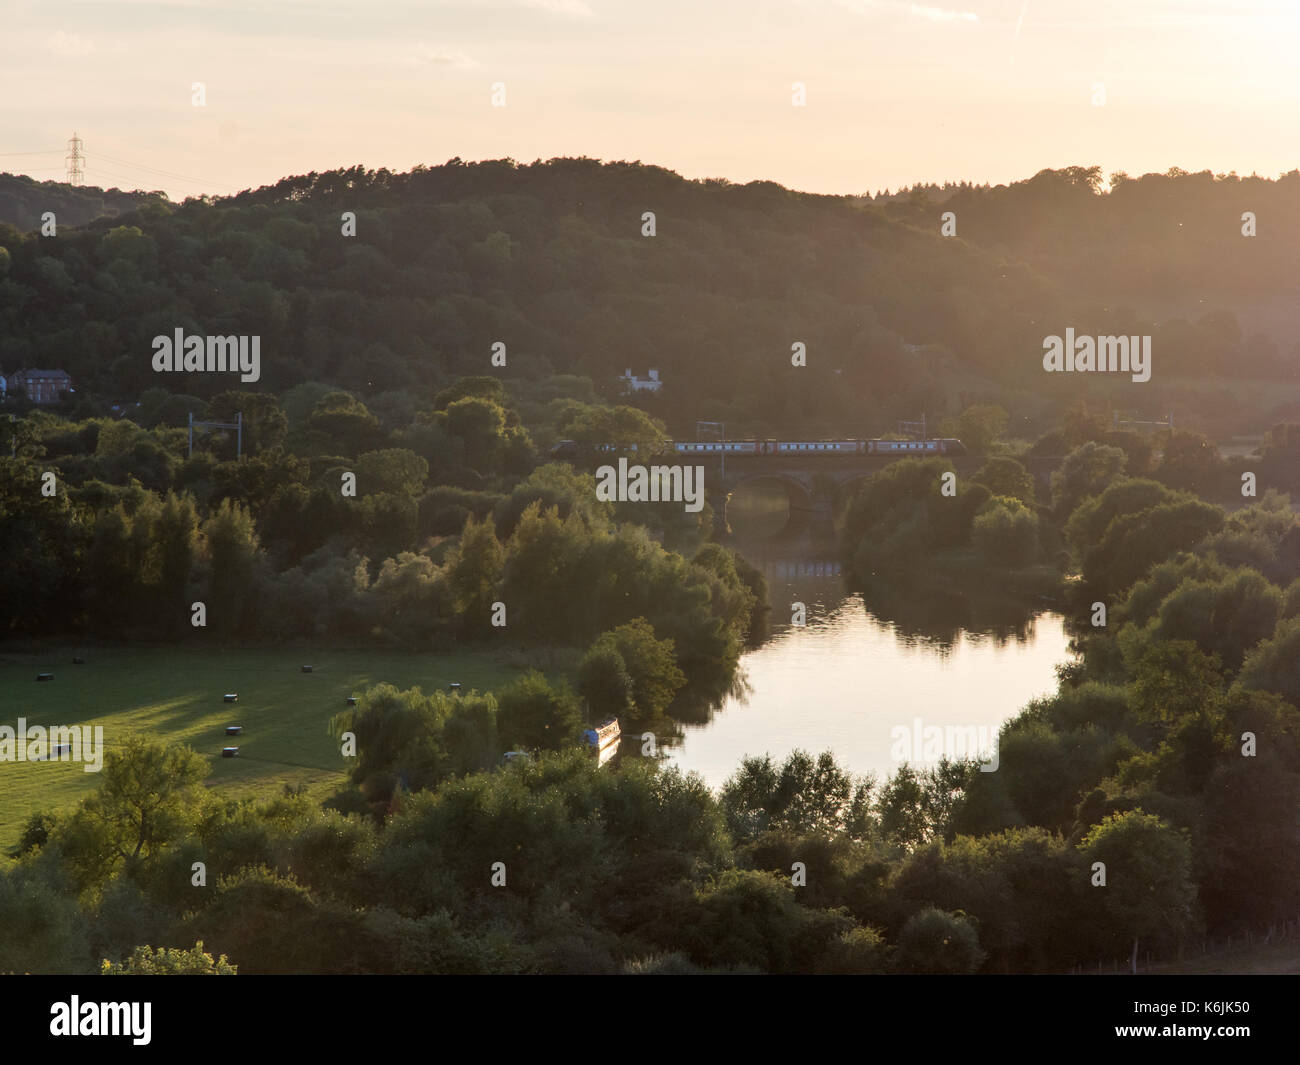 Reading, England, UK - August 29, 2016: A Crosscountry Class 220 Voyager train crosses the River Thames on the Goring Viaduct in the Chiltern Hills we - Stock Image